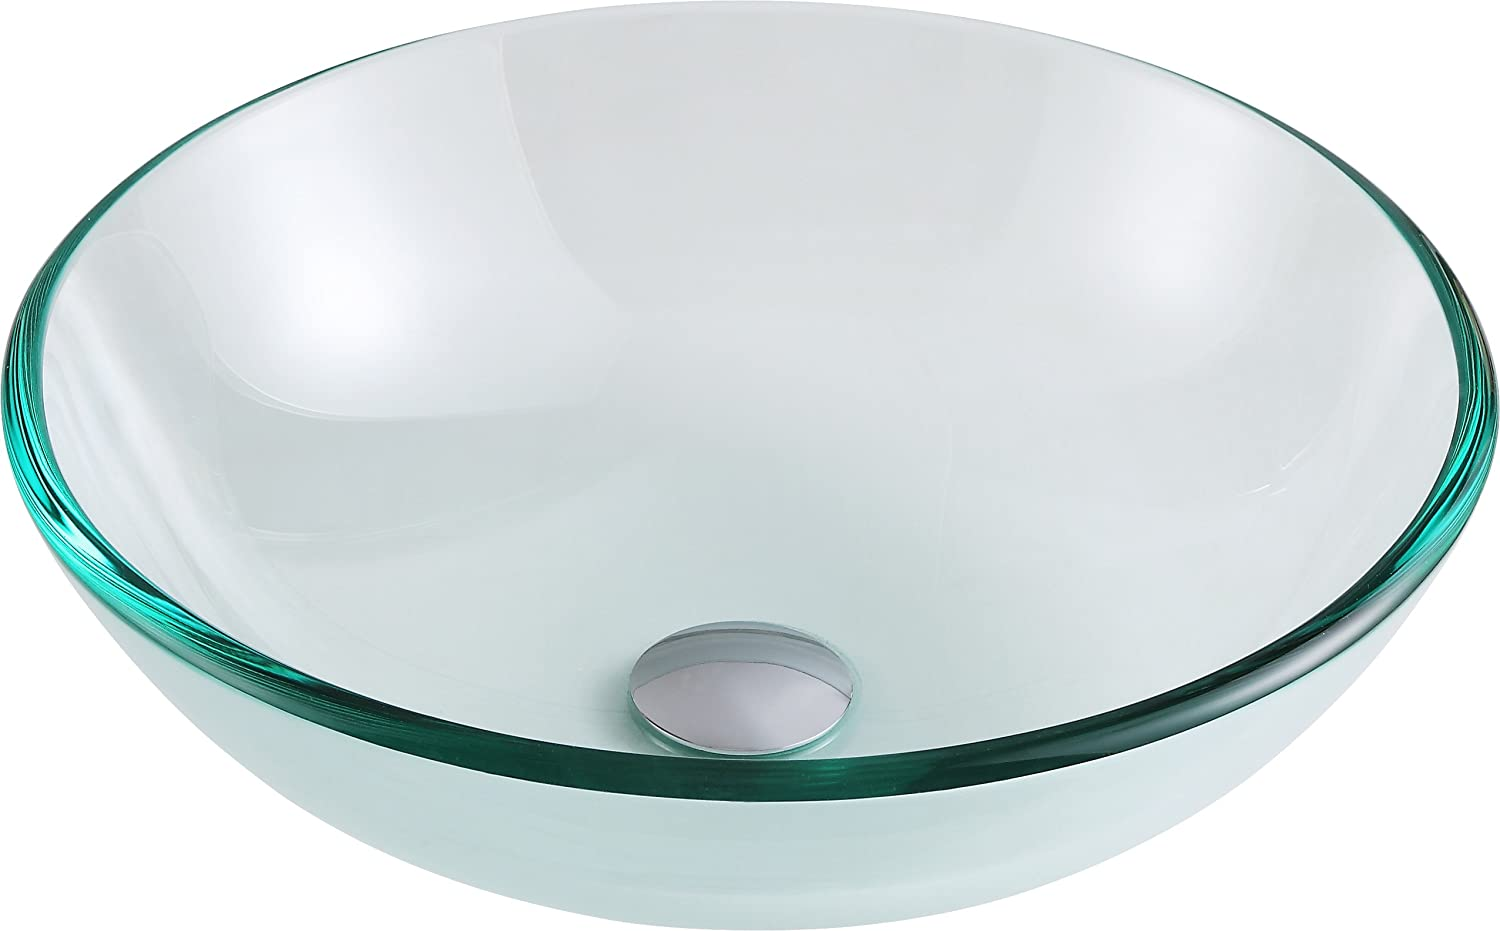 Ranking TOP11 ANZZI Etude Modern Tempered Glass Vessel in To Sink Clear Bowl Max 48% OFF